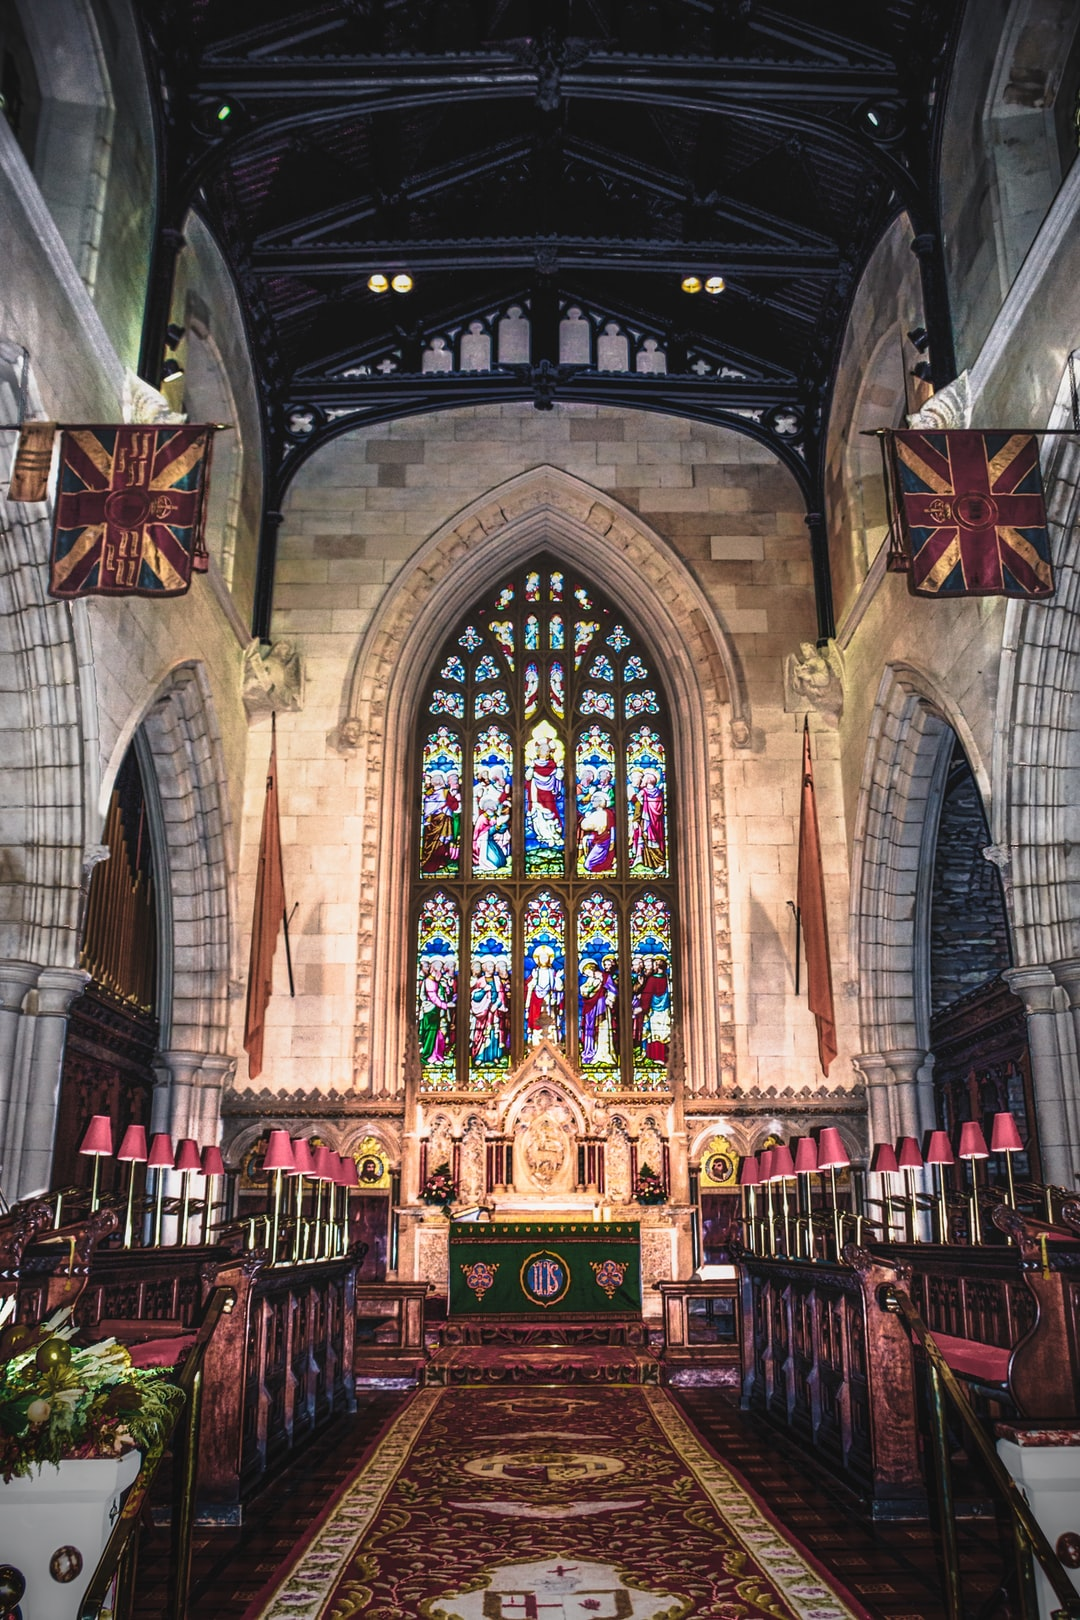 The altar at St. Columb's Cathedral in Derry. It is the first Cathedral built post-reformation.